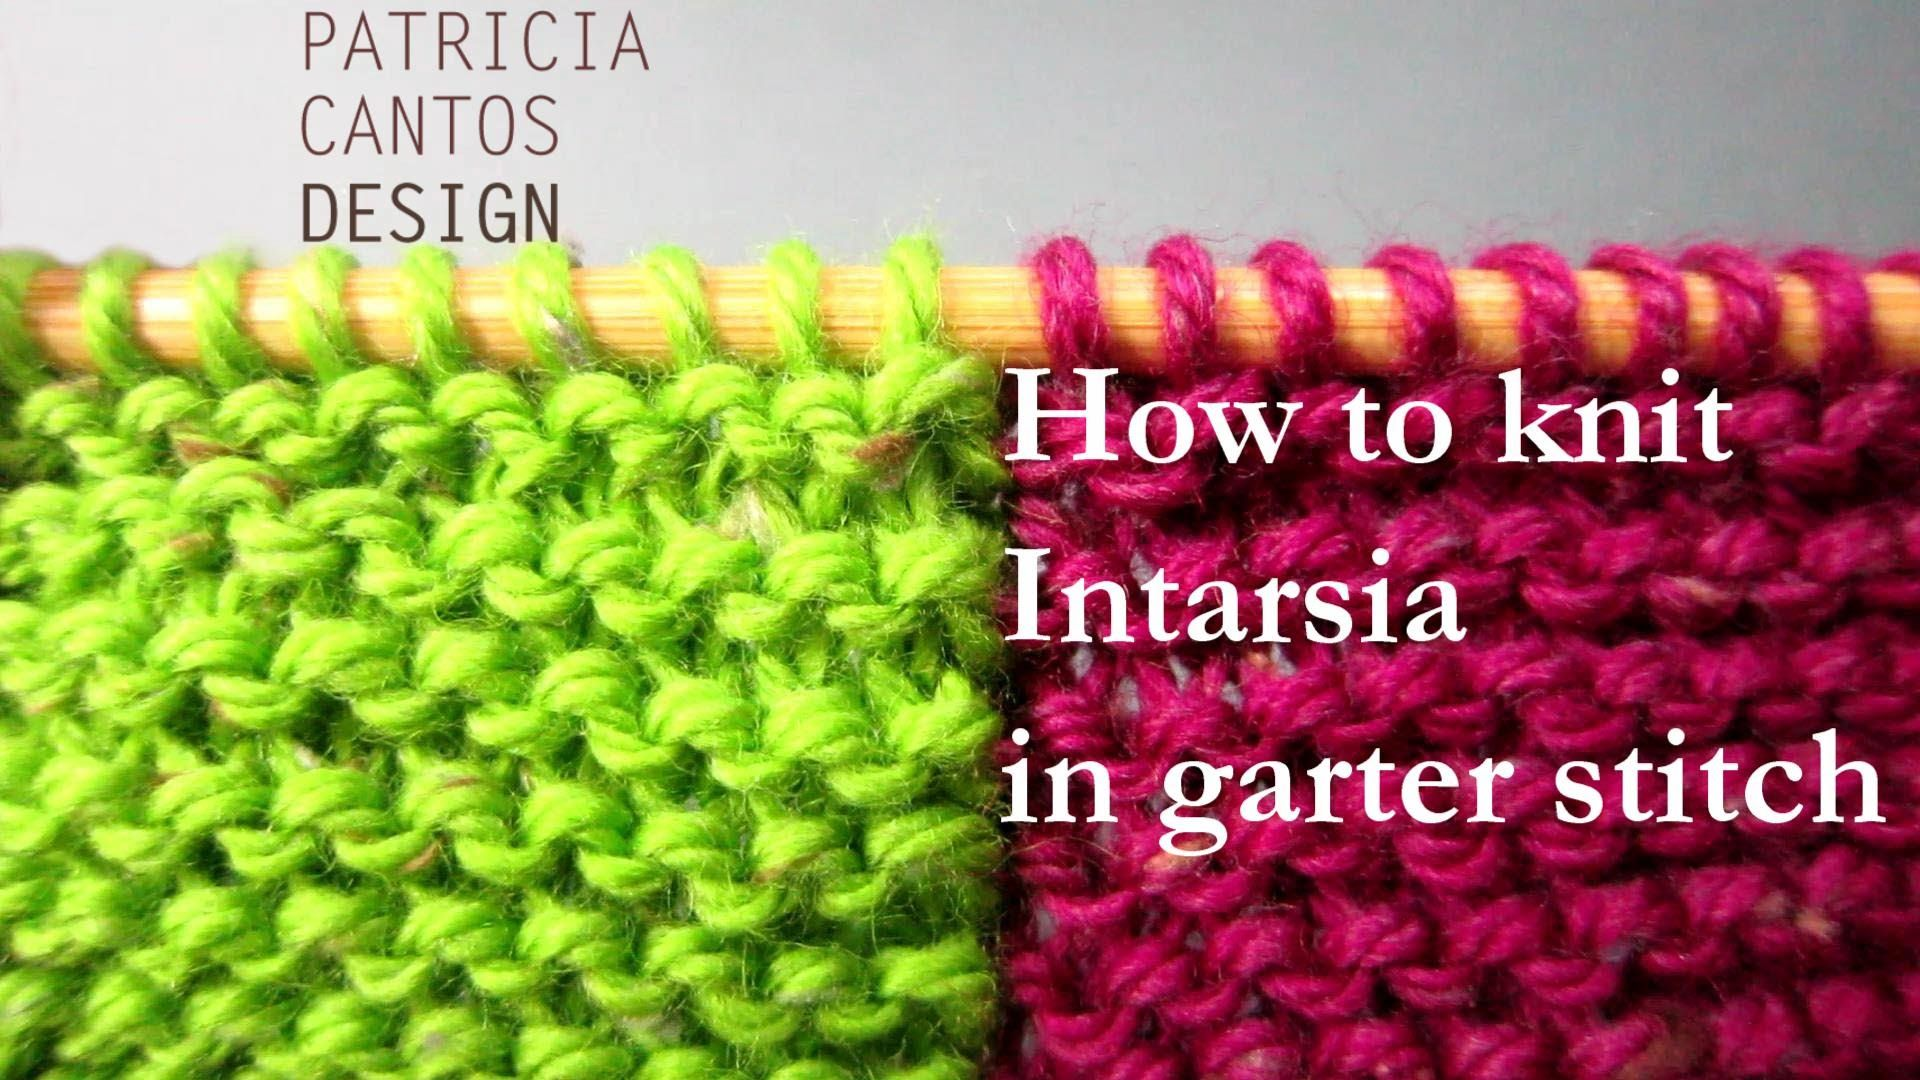 How To Knit Intarsia Garter Stitch  Change Color Middle Of Row Video  Tutorial By Patricia